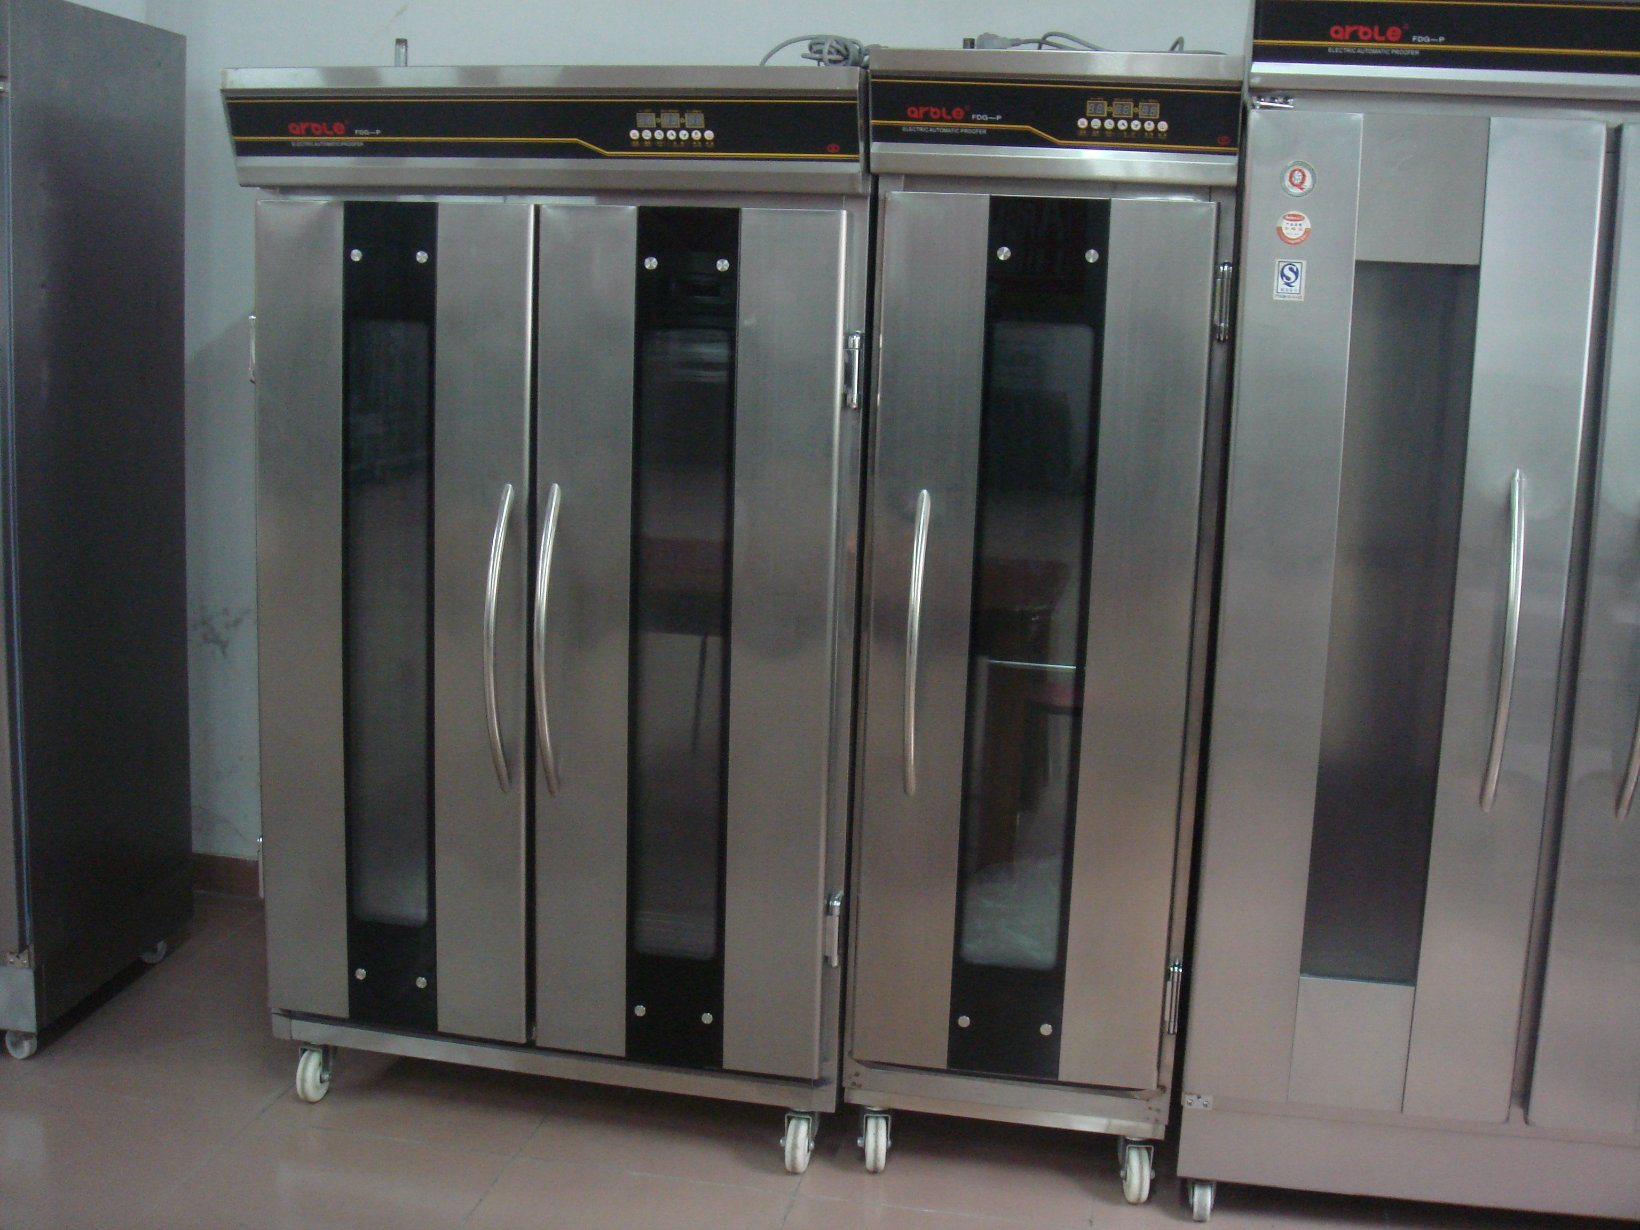 High Quality Bread Prover with Steam and Freezer